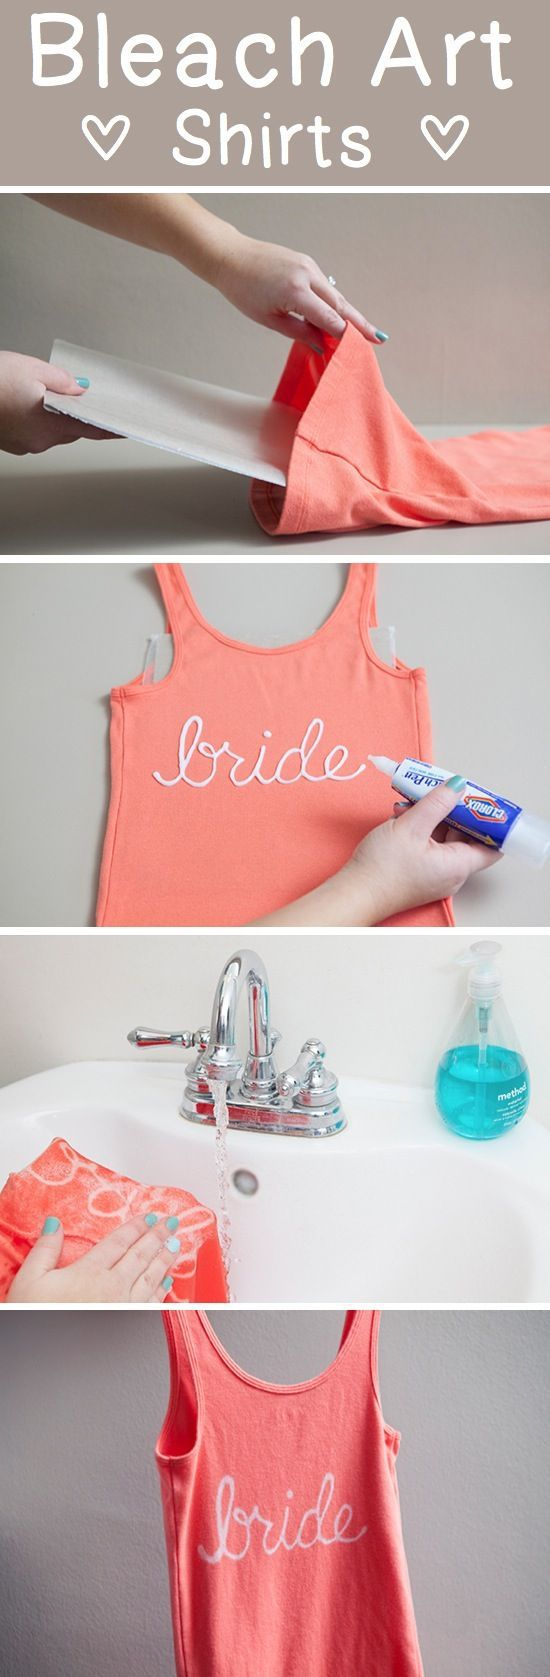 Use a Clorox Bleach Pen to make your own shirt.. how cute!